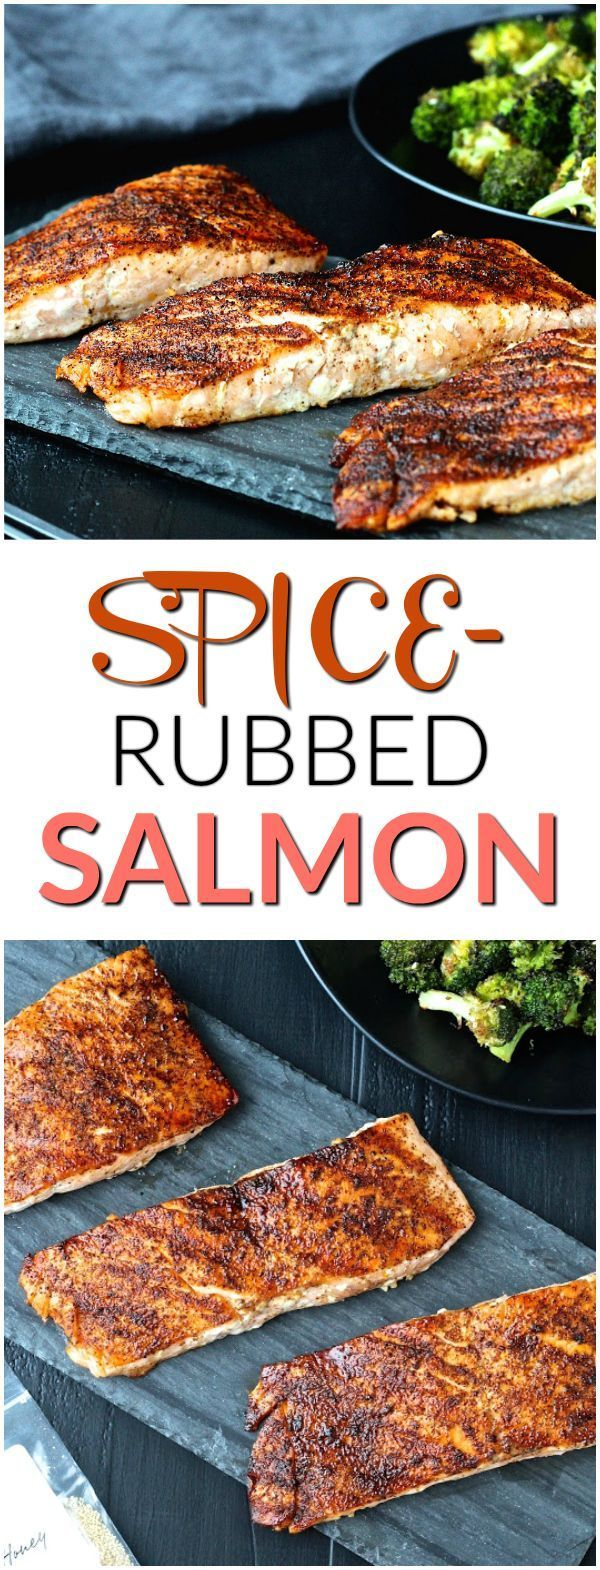 Spice-Rubbed Salmon | @The Foodie Physician